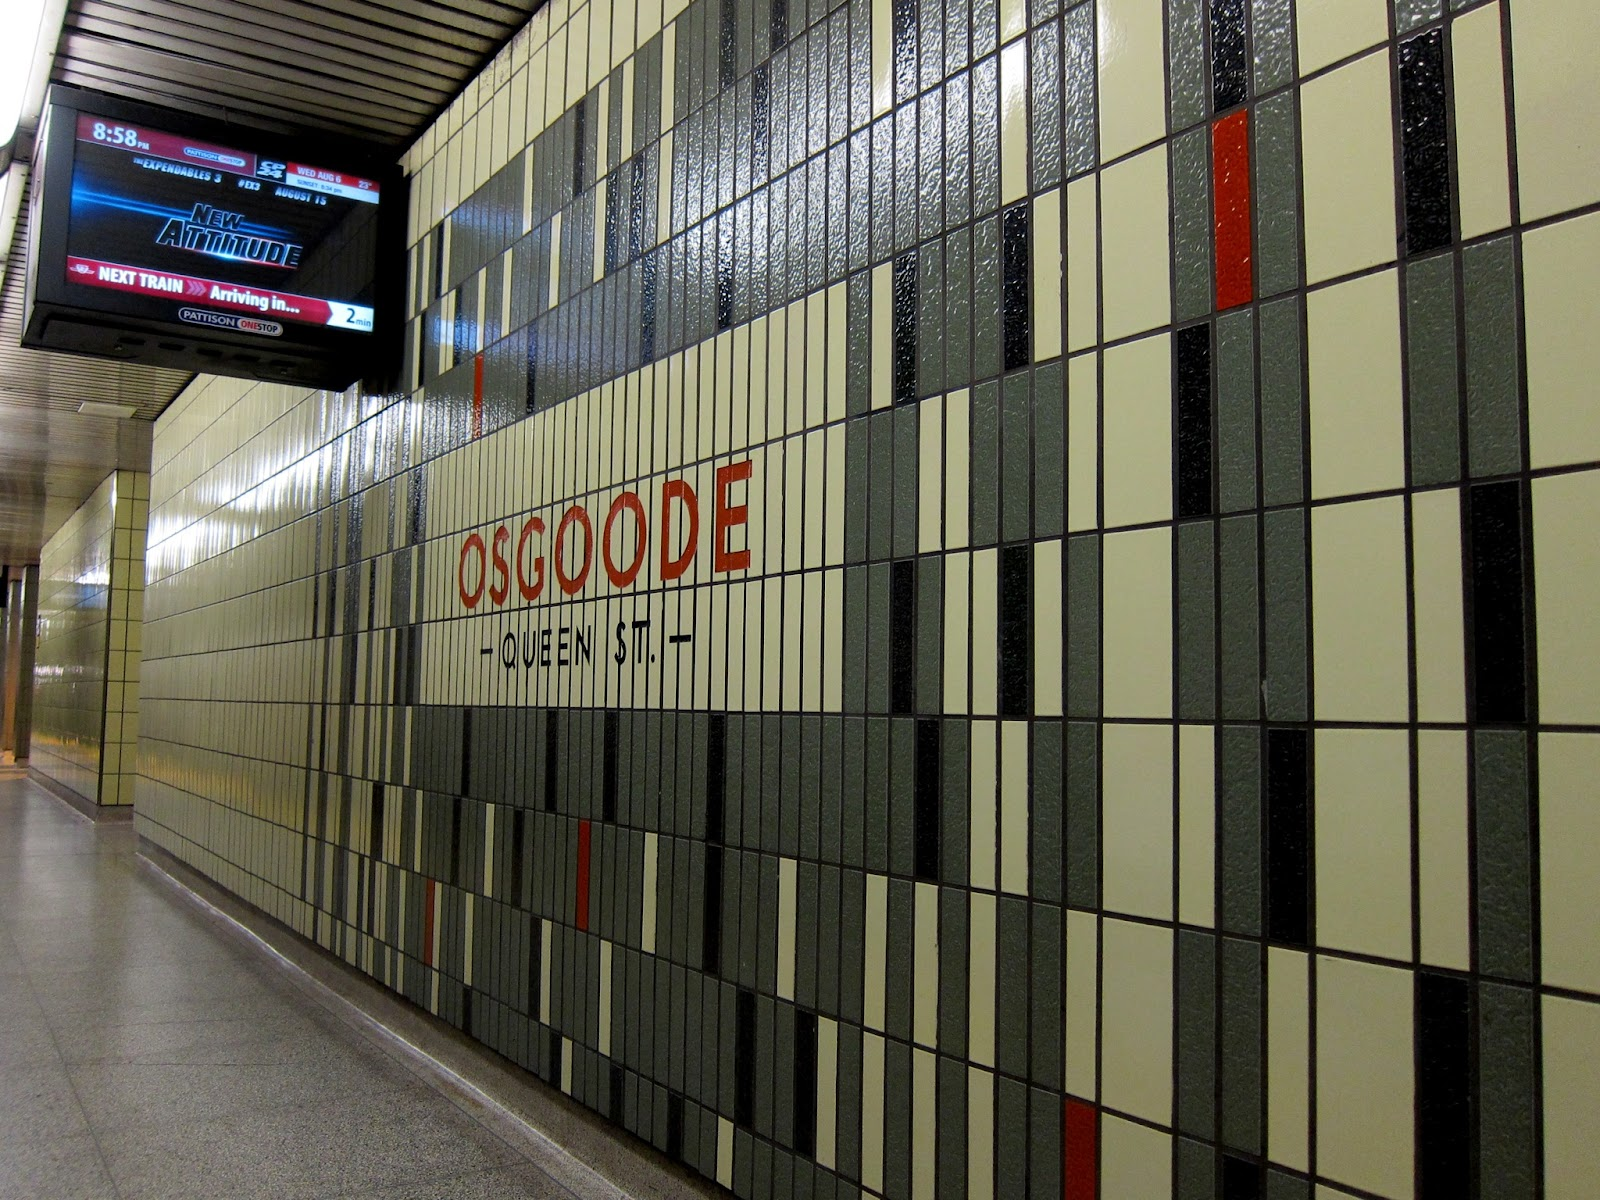 Osgoode station identification - inner wall